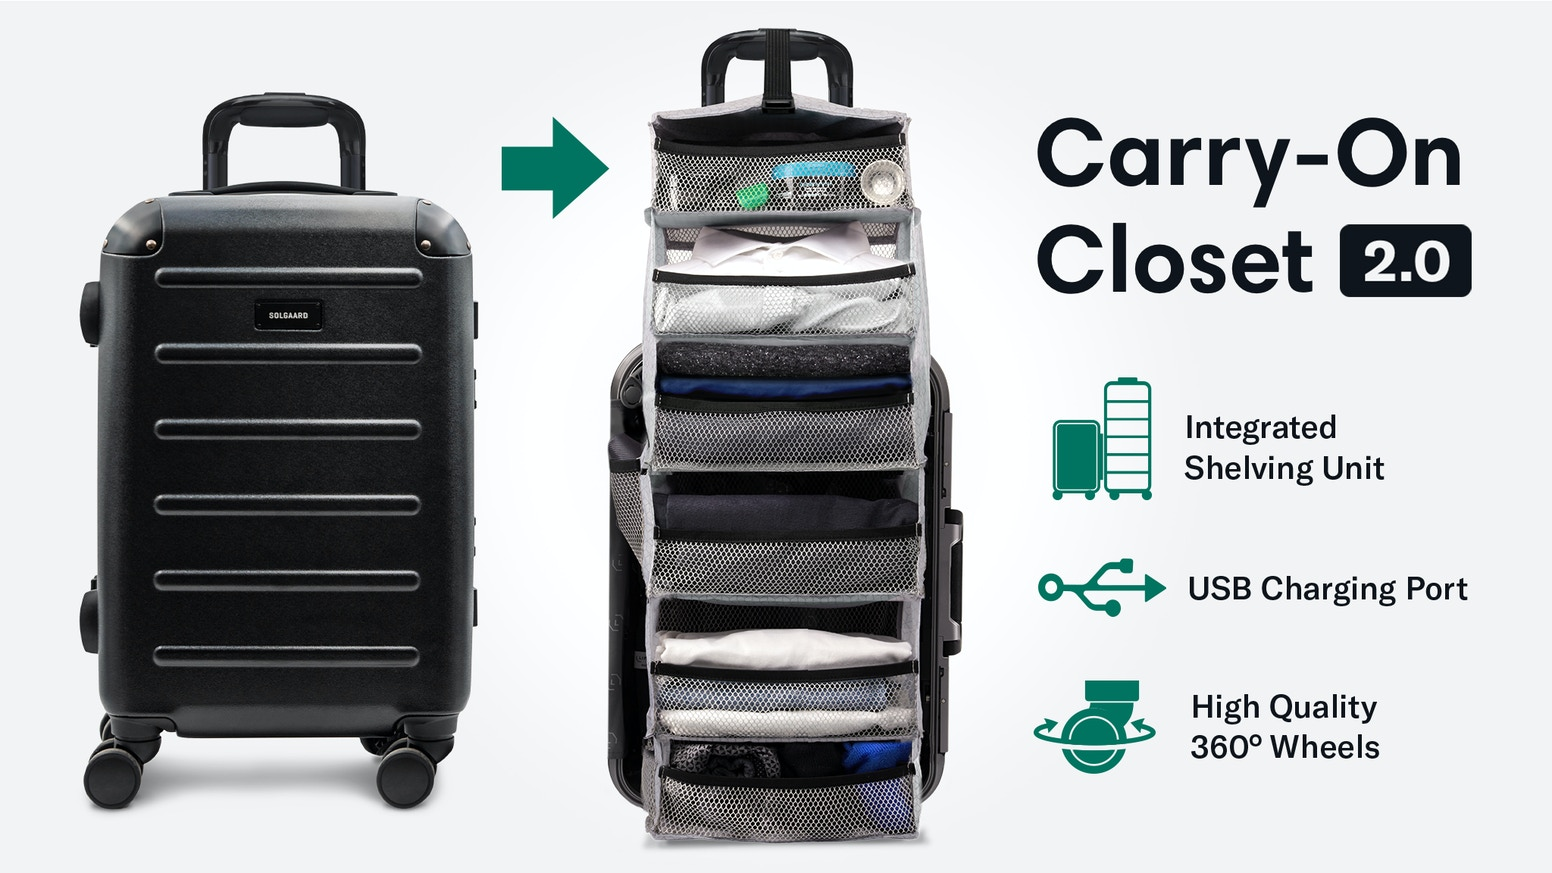 A premium suitcase with a retractable shelving system, USB power, eco-friendly lining and more.